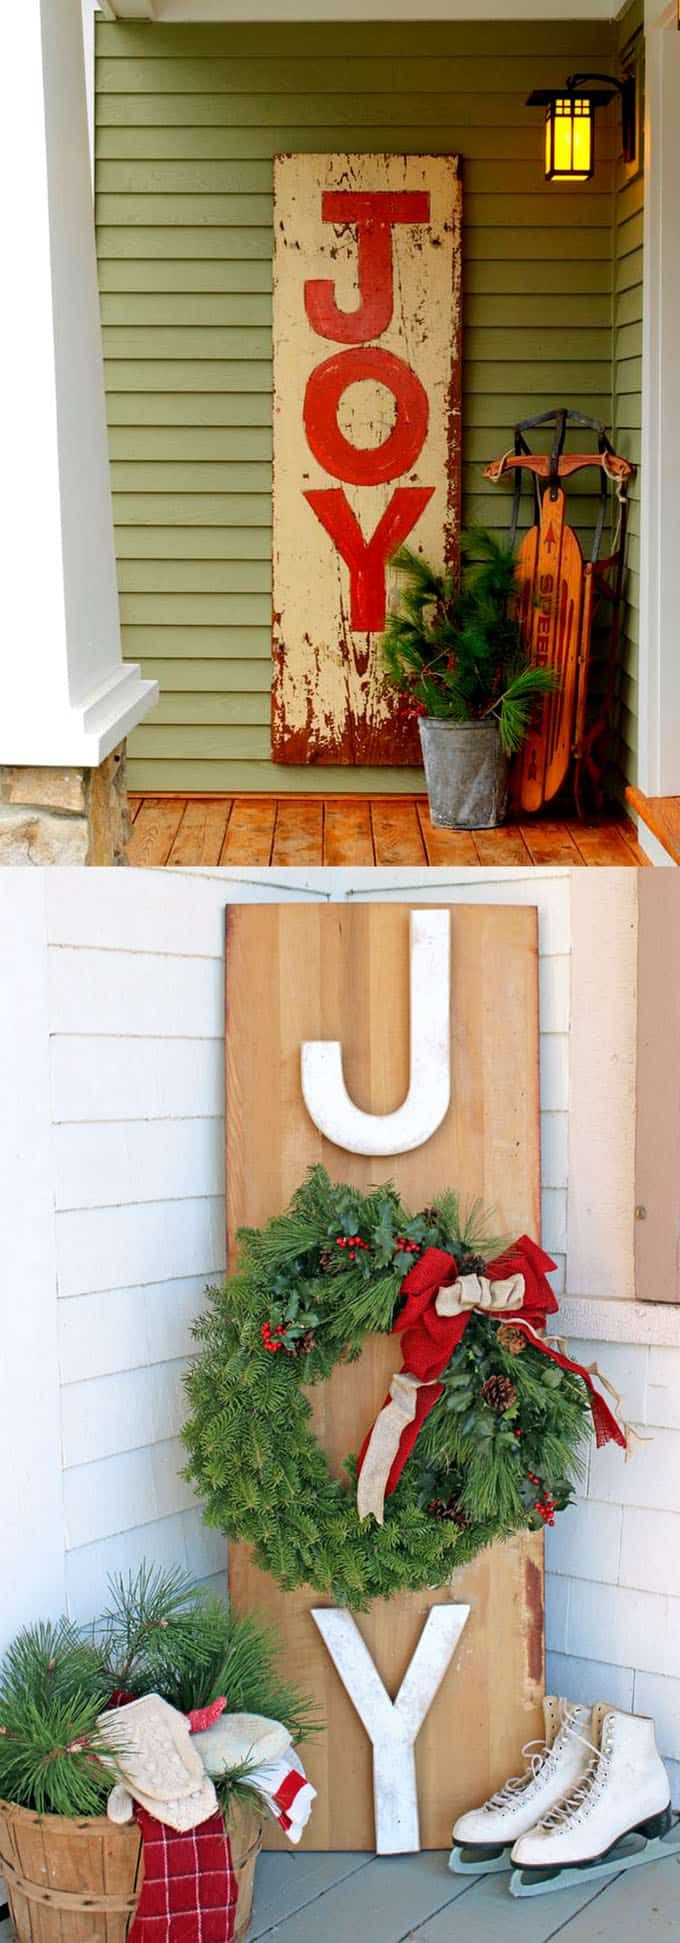 Outdoor porch christmas decorations  Gorgeous Outdoor Christmas Decorations  Best Ideas u Tutorials